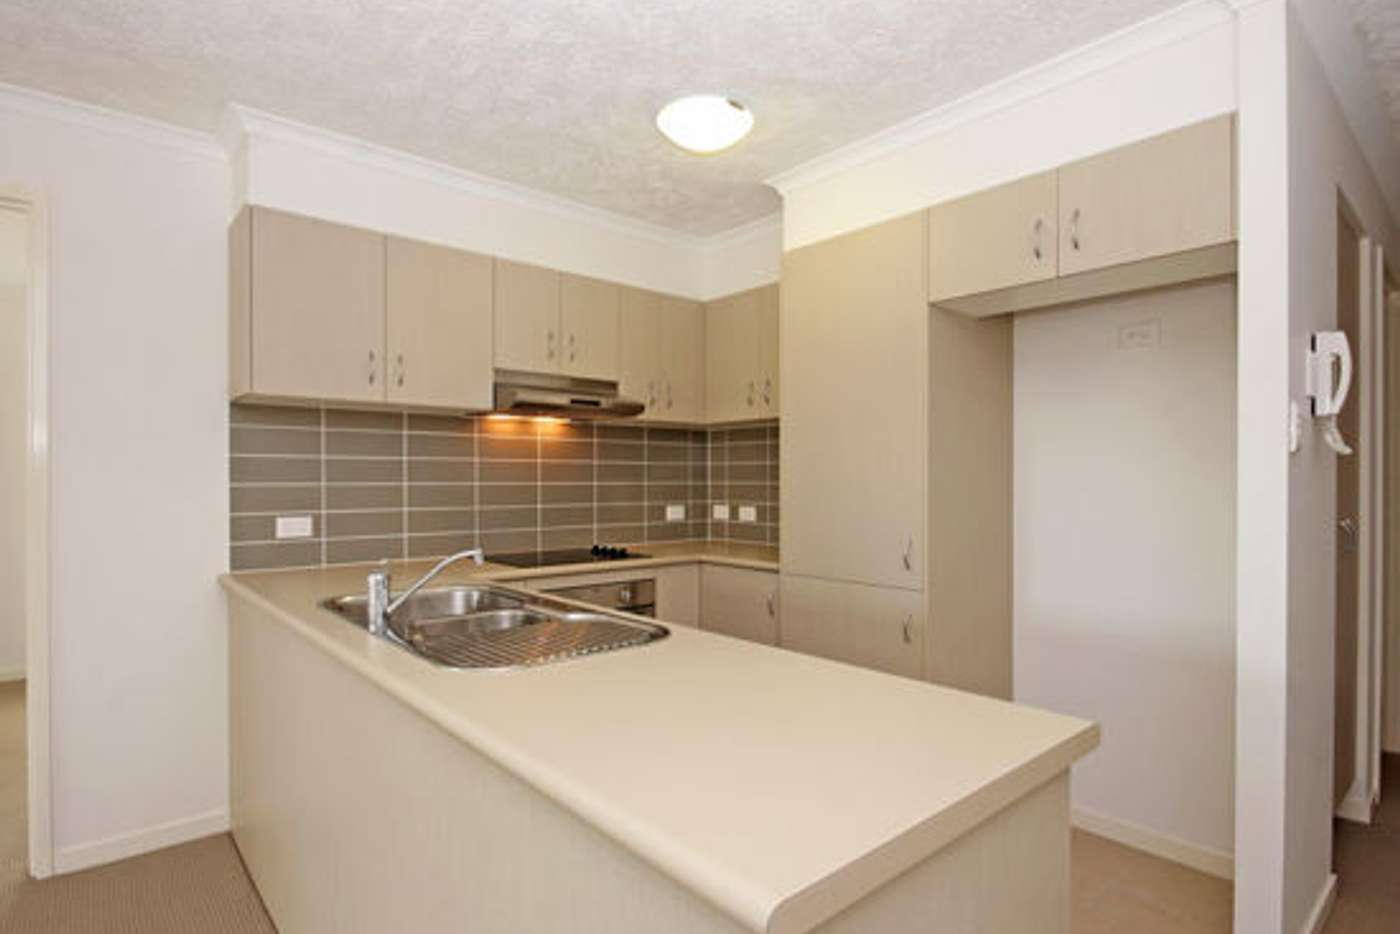 Sixth view of Homely apartment listing, 223 26 Edward Street Caboolture 4510, Caboolture QLD 4510